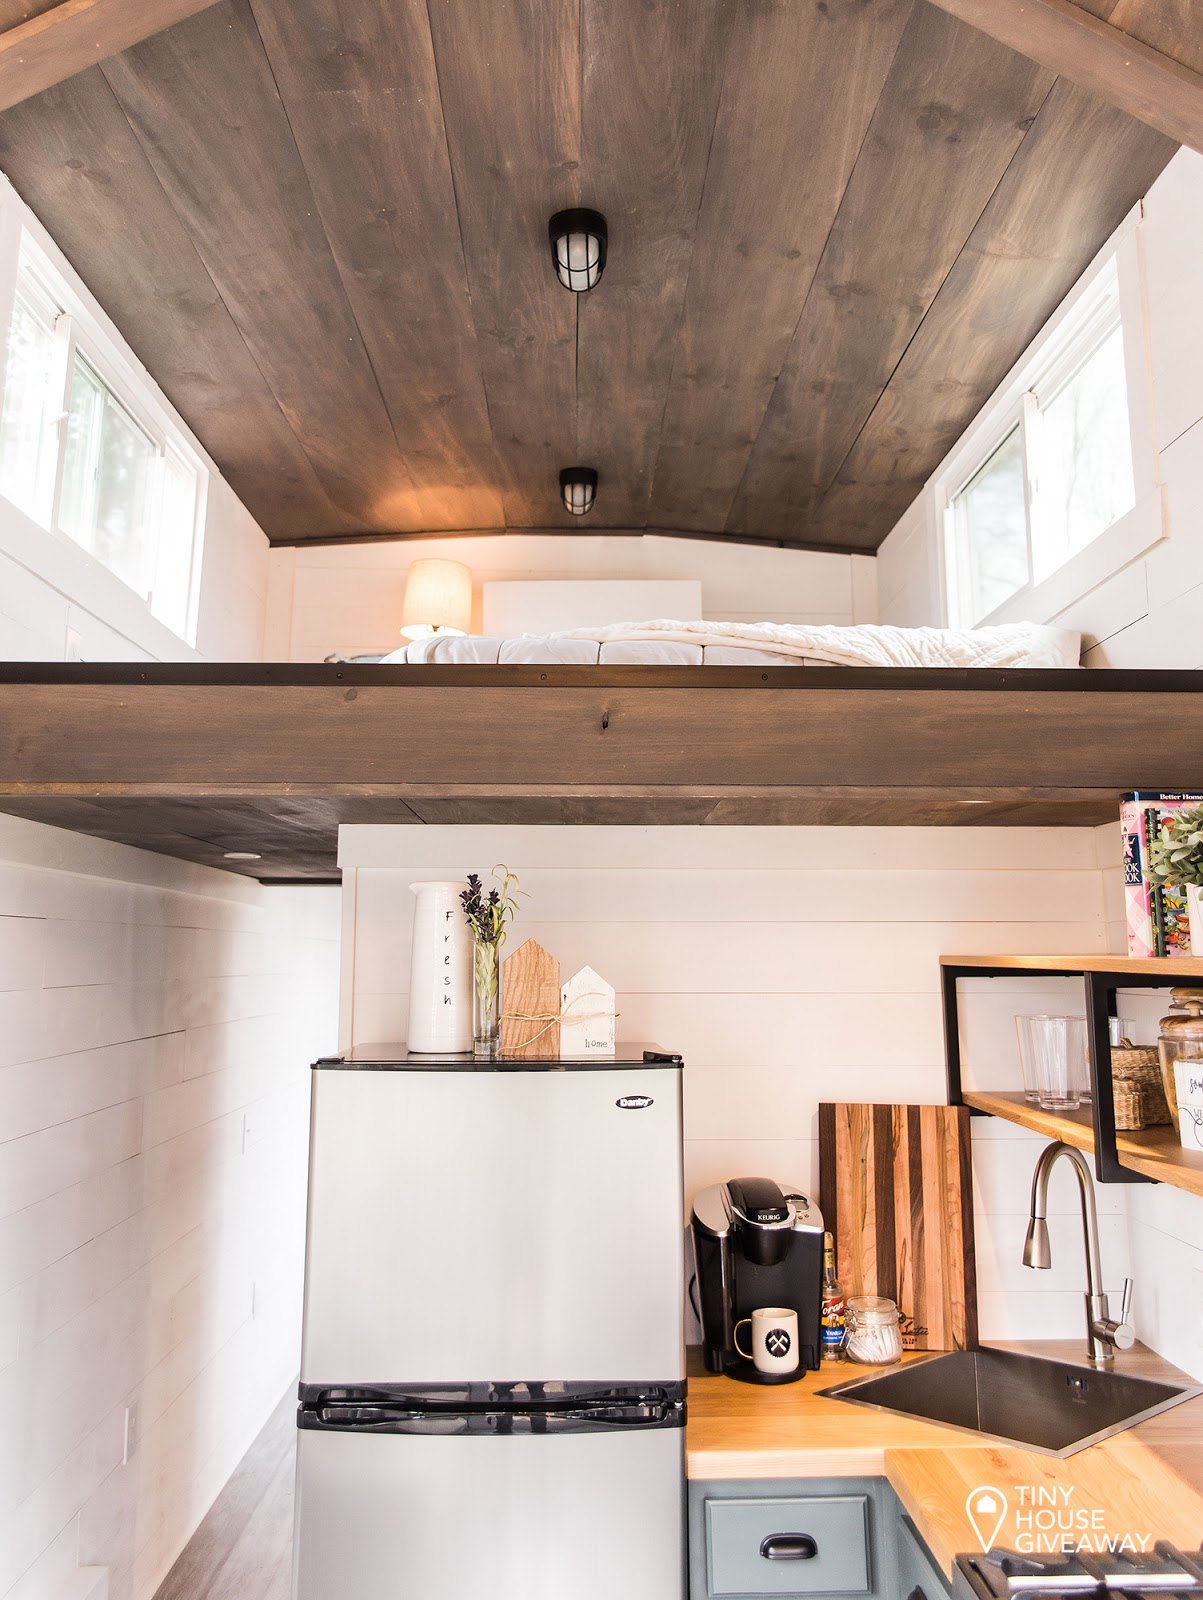 TINY HOUSE TOWN: Tiny House Giveaway: Norma Jean